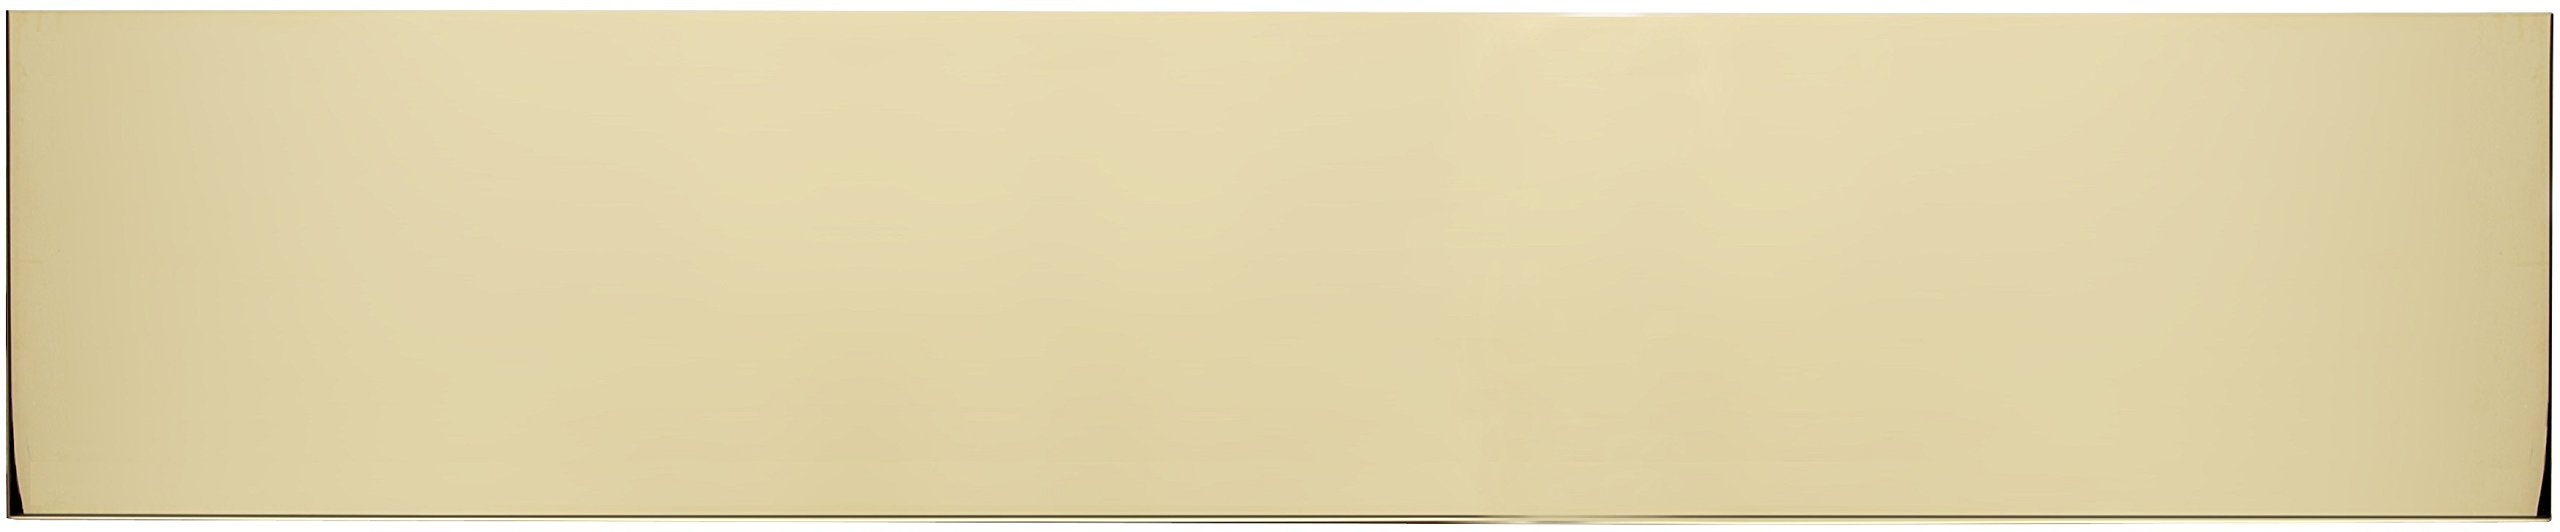 Brass Accents A09-P0634-628MAG Kick Plate Magnetic Mount, 6'' x 34'', Polished Brass-Aluminum